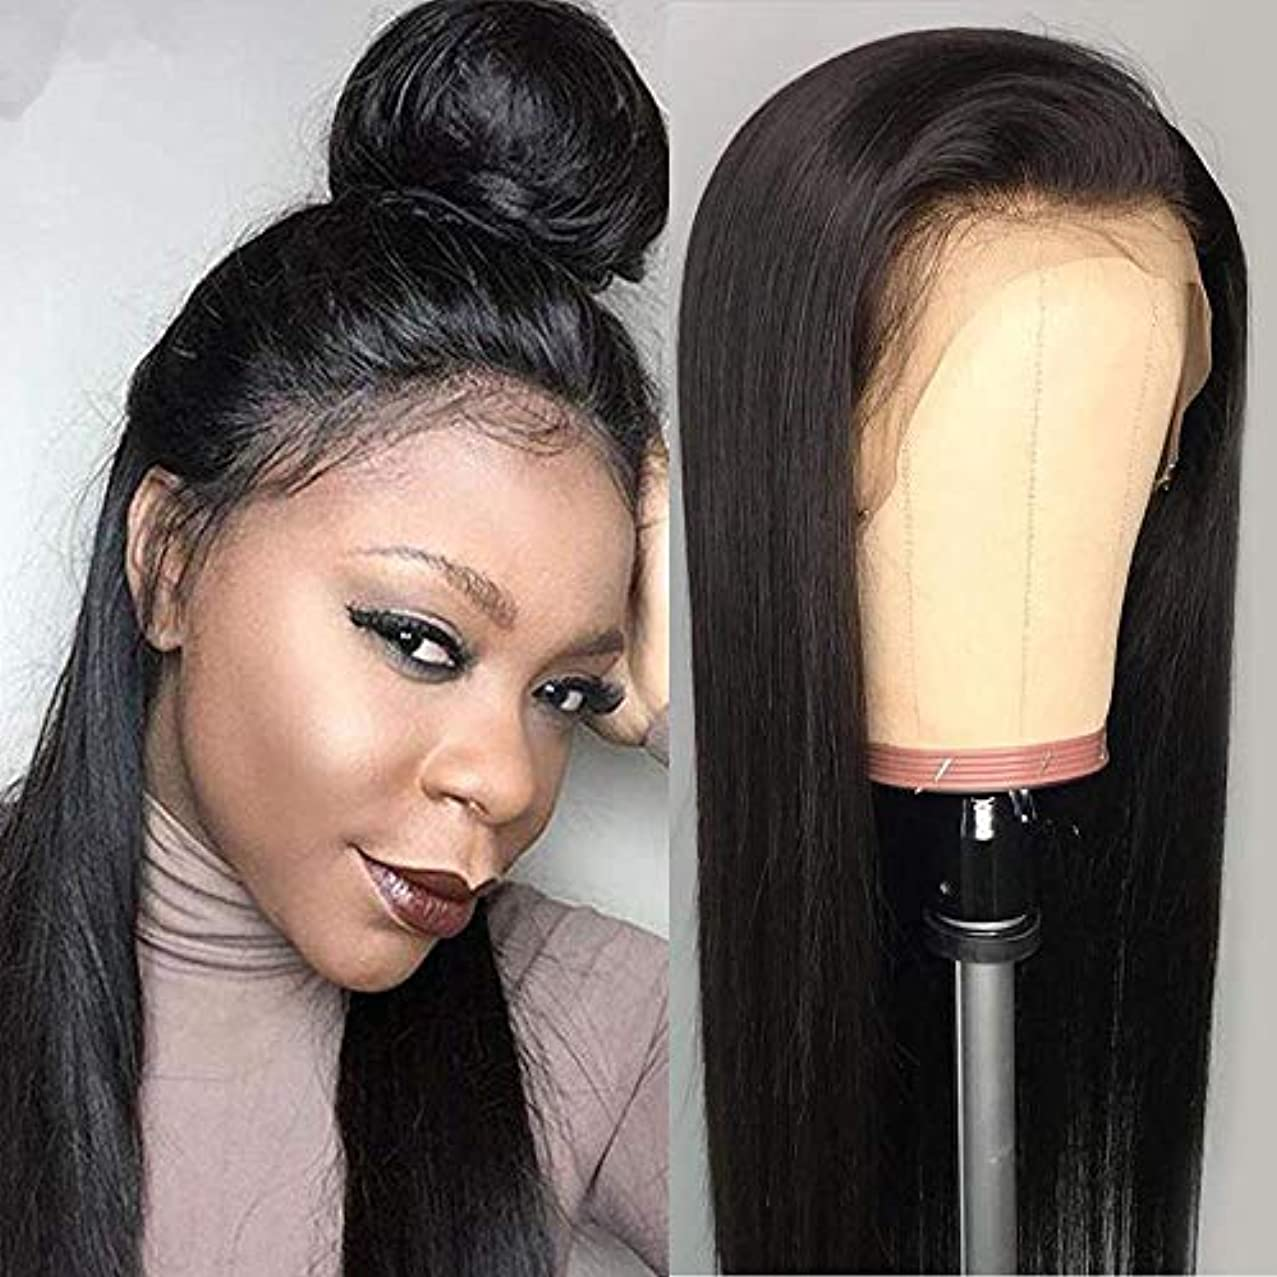 Luduna Lace Front Wigs Brazilian Virgin Human Hair Wigs for Black Women Pre Plucked Glueless Straight Human Hair Wigs With Baby Hair 130% Density (10